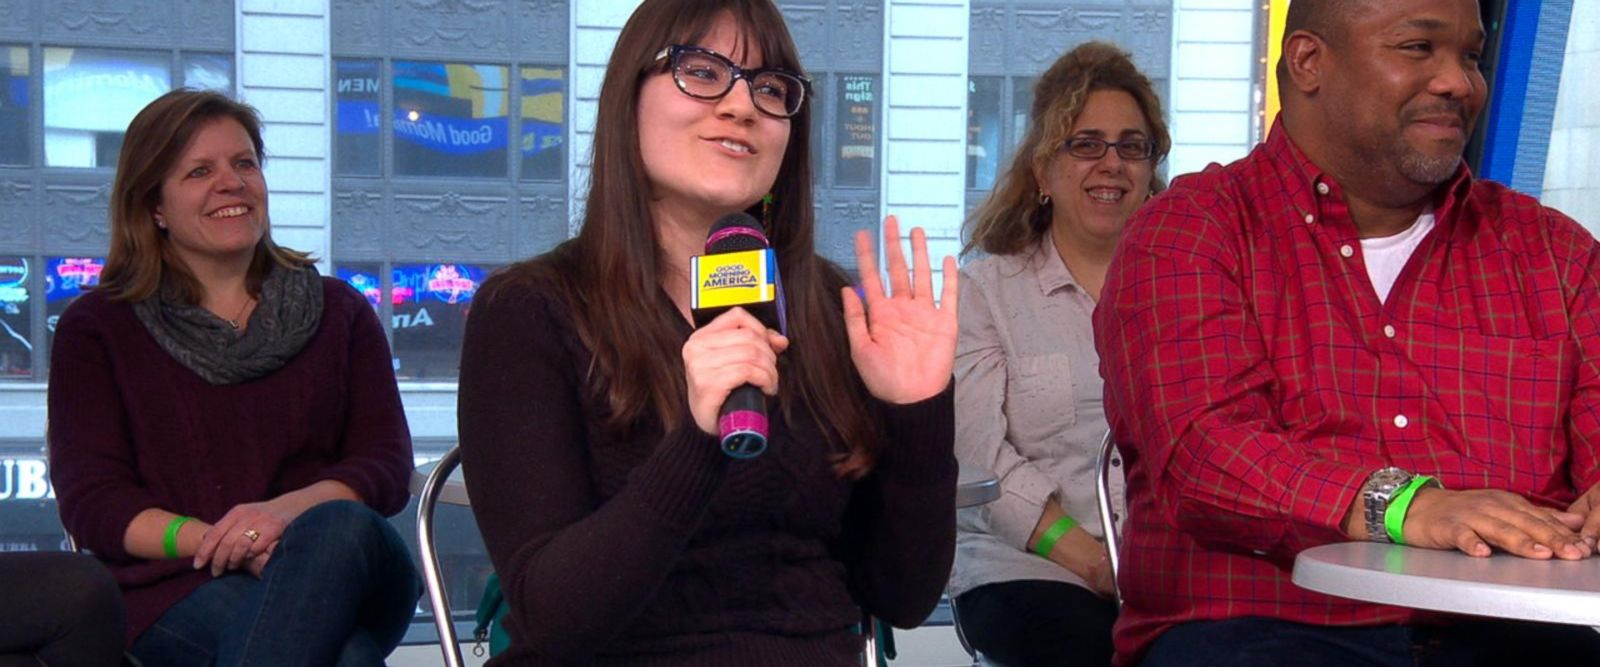 VIDEO: The 'GMA' anchors test their Oscars trivia knowledge